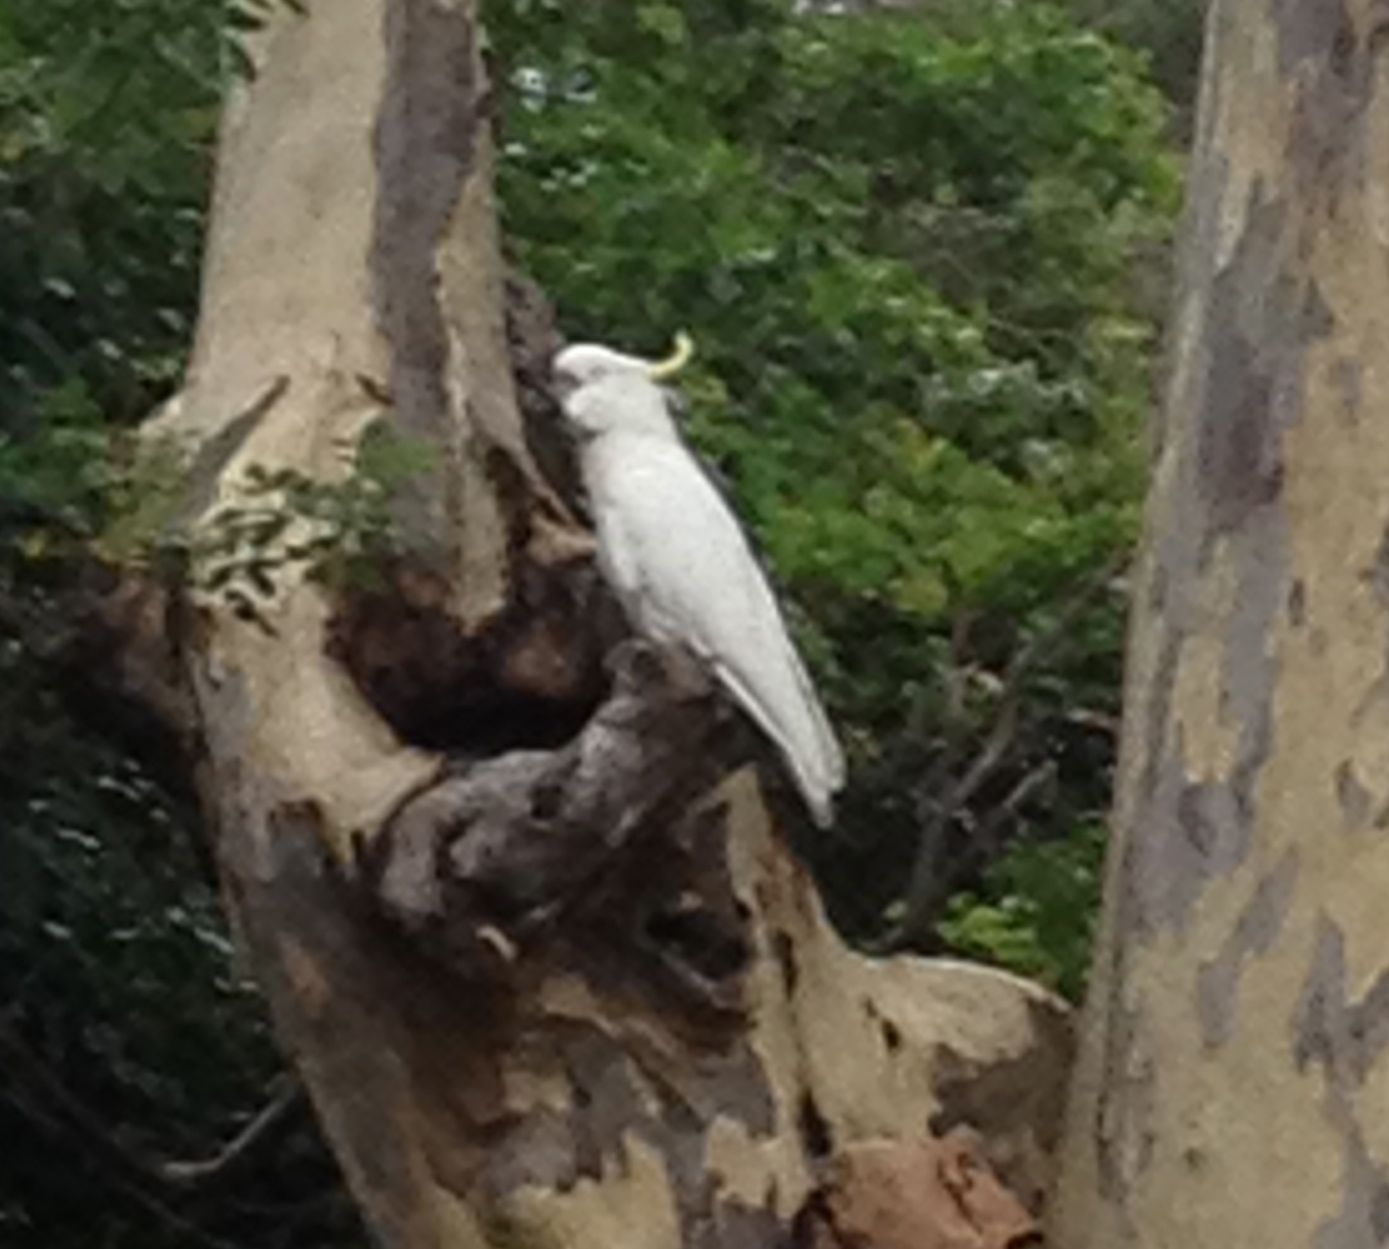 27. Birds - Cockatoo in Mona Vale, Pittwater, Australia, November 2015